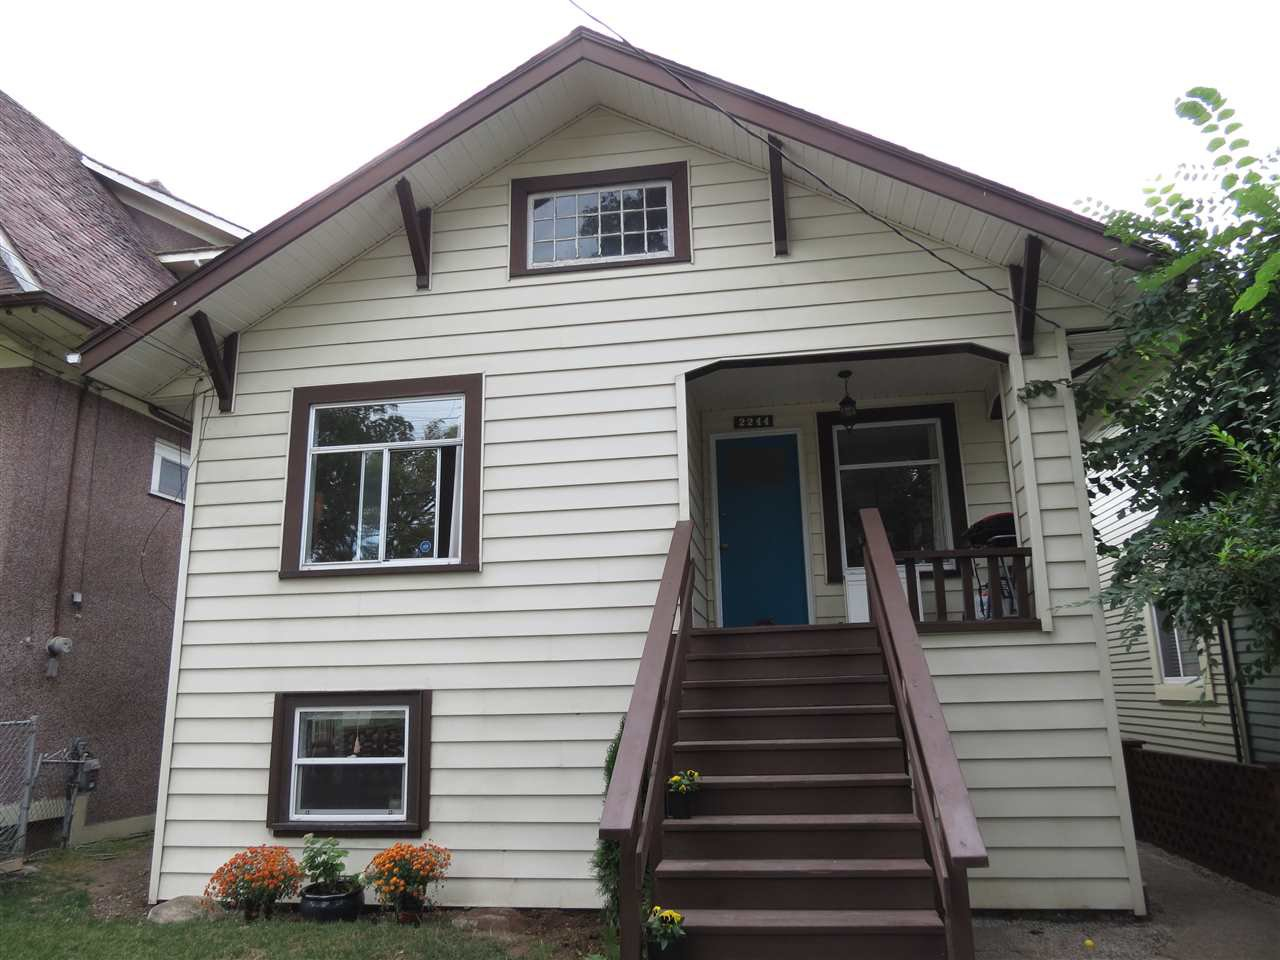 Main Photo: 2244 E PENDER STREET in Vancouver: Hastings House for sale (Vancouver East)  : MLS®# R2403634